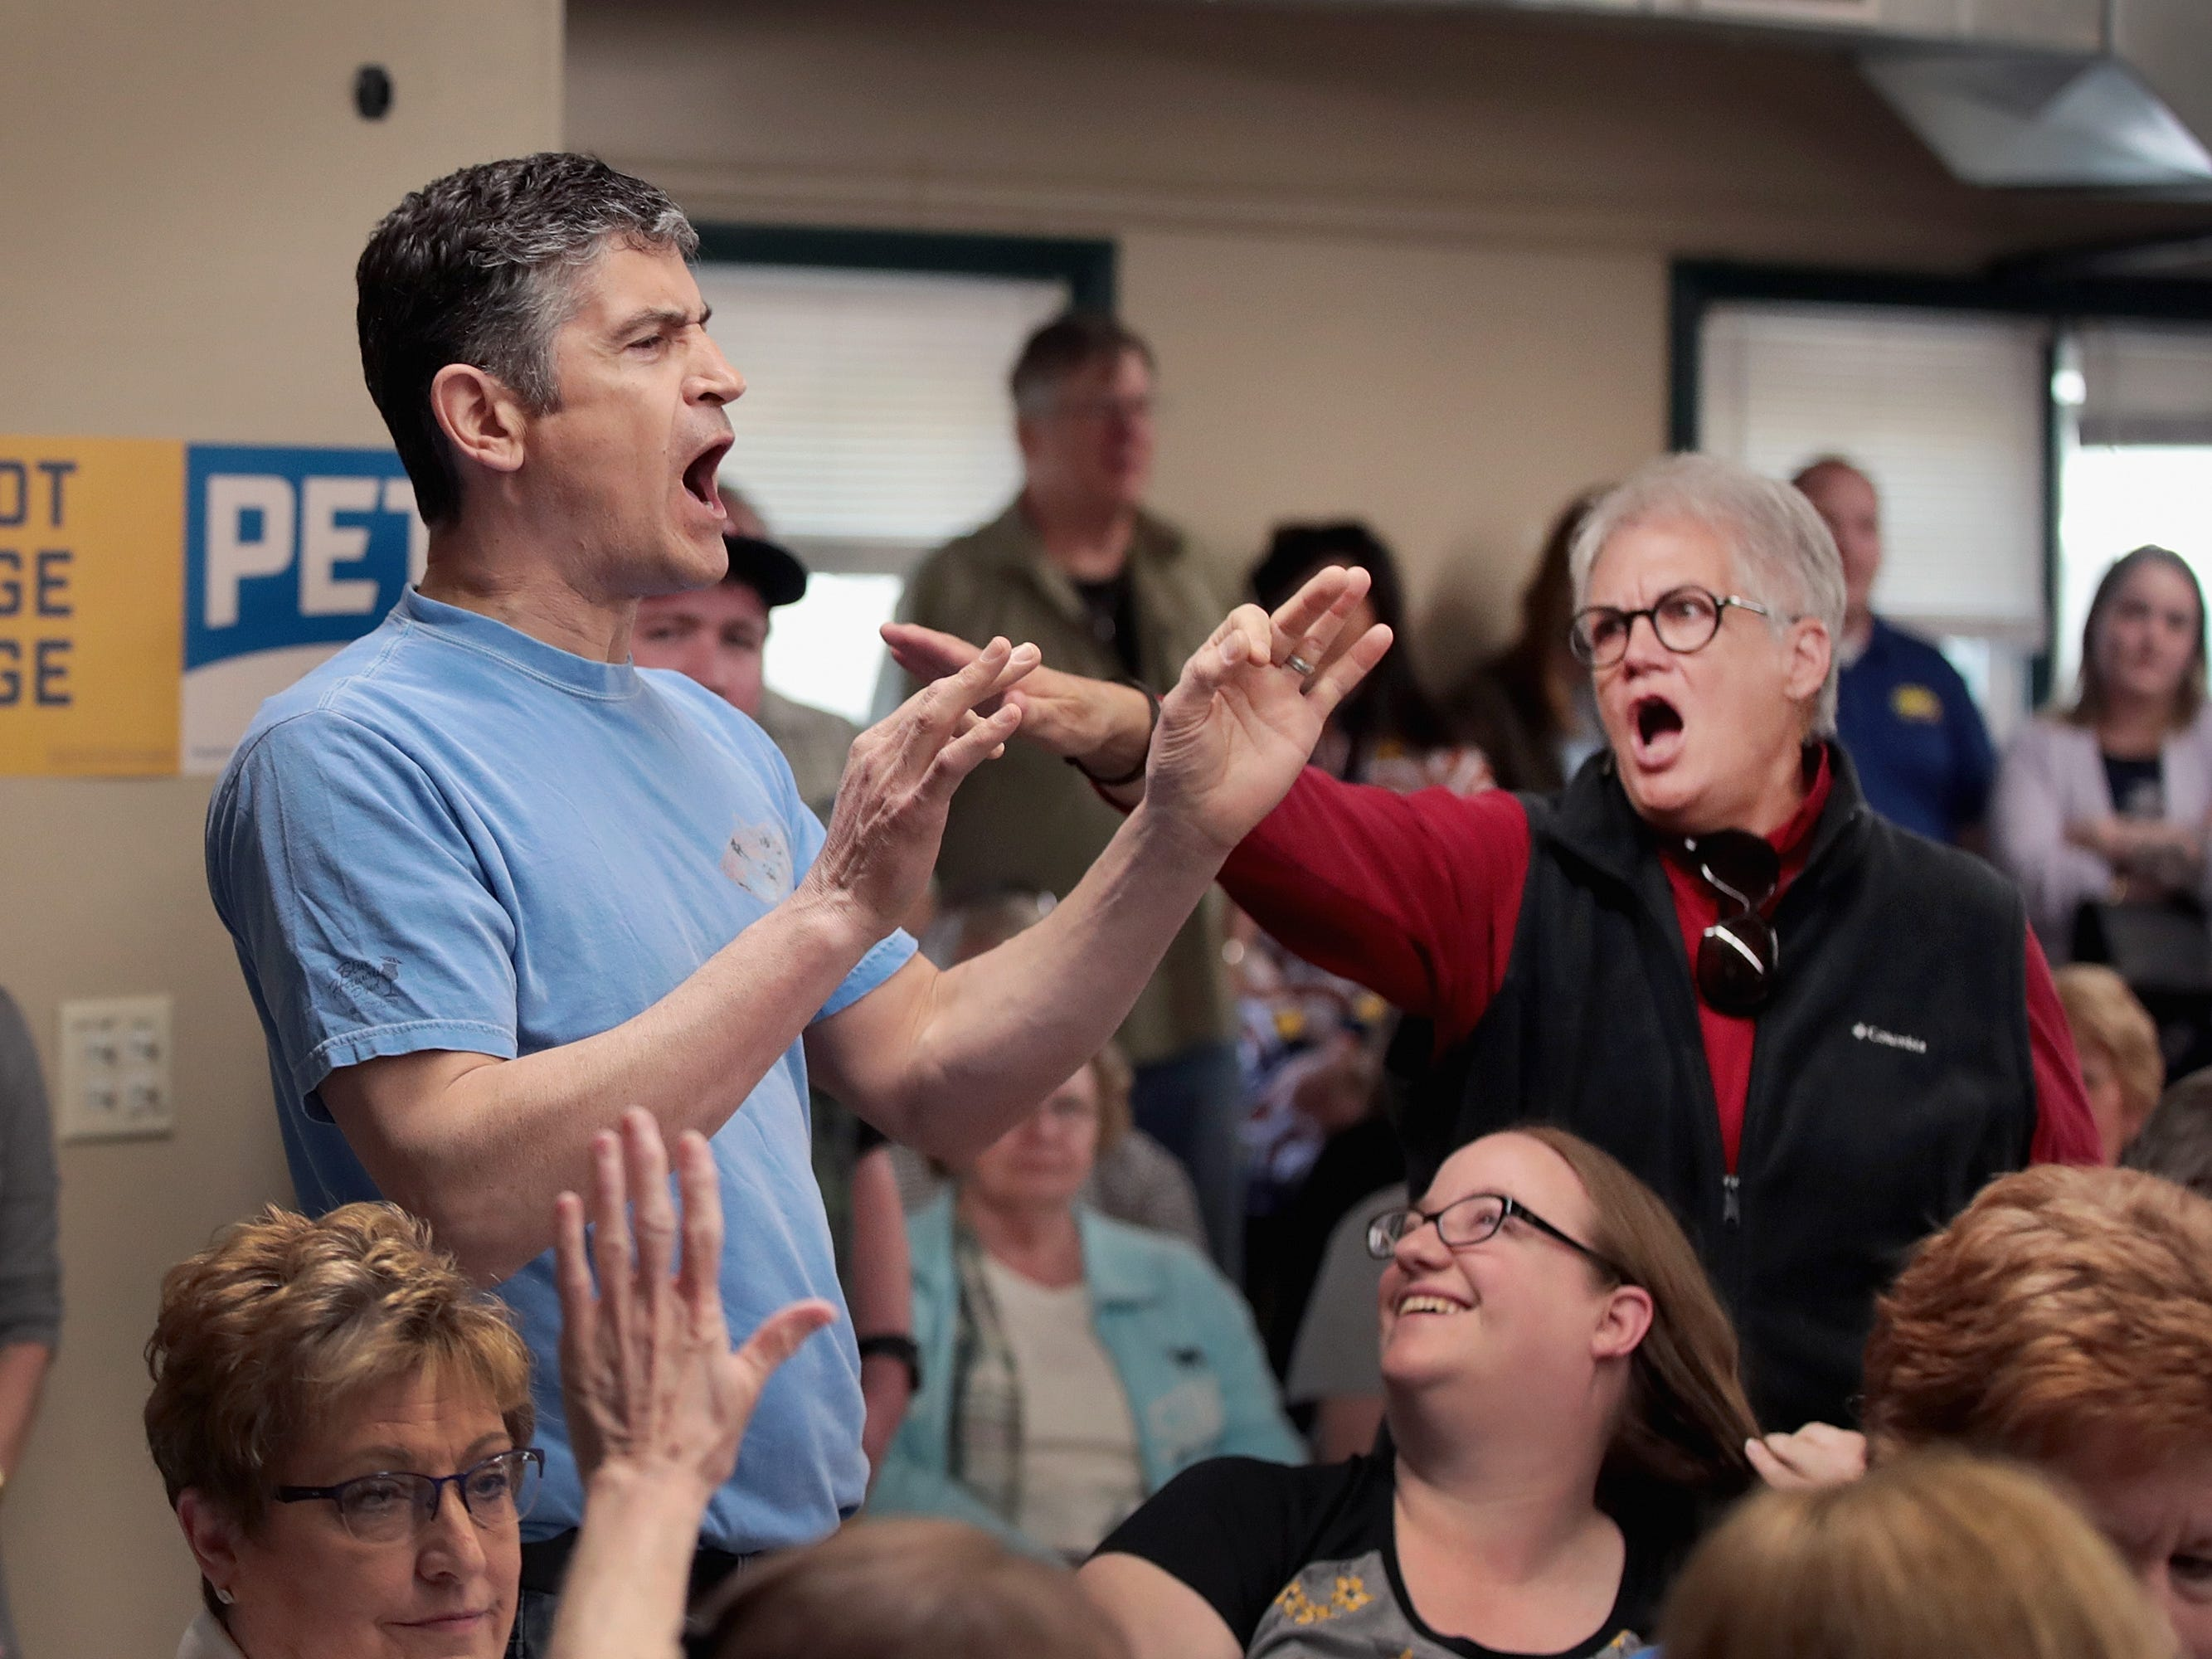 How Pete Buttigieg handled anti-gay protesters shouting about Sodom and Gomorrah at Iowa rally